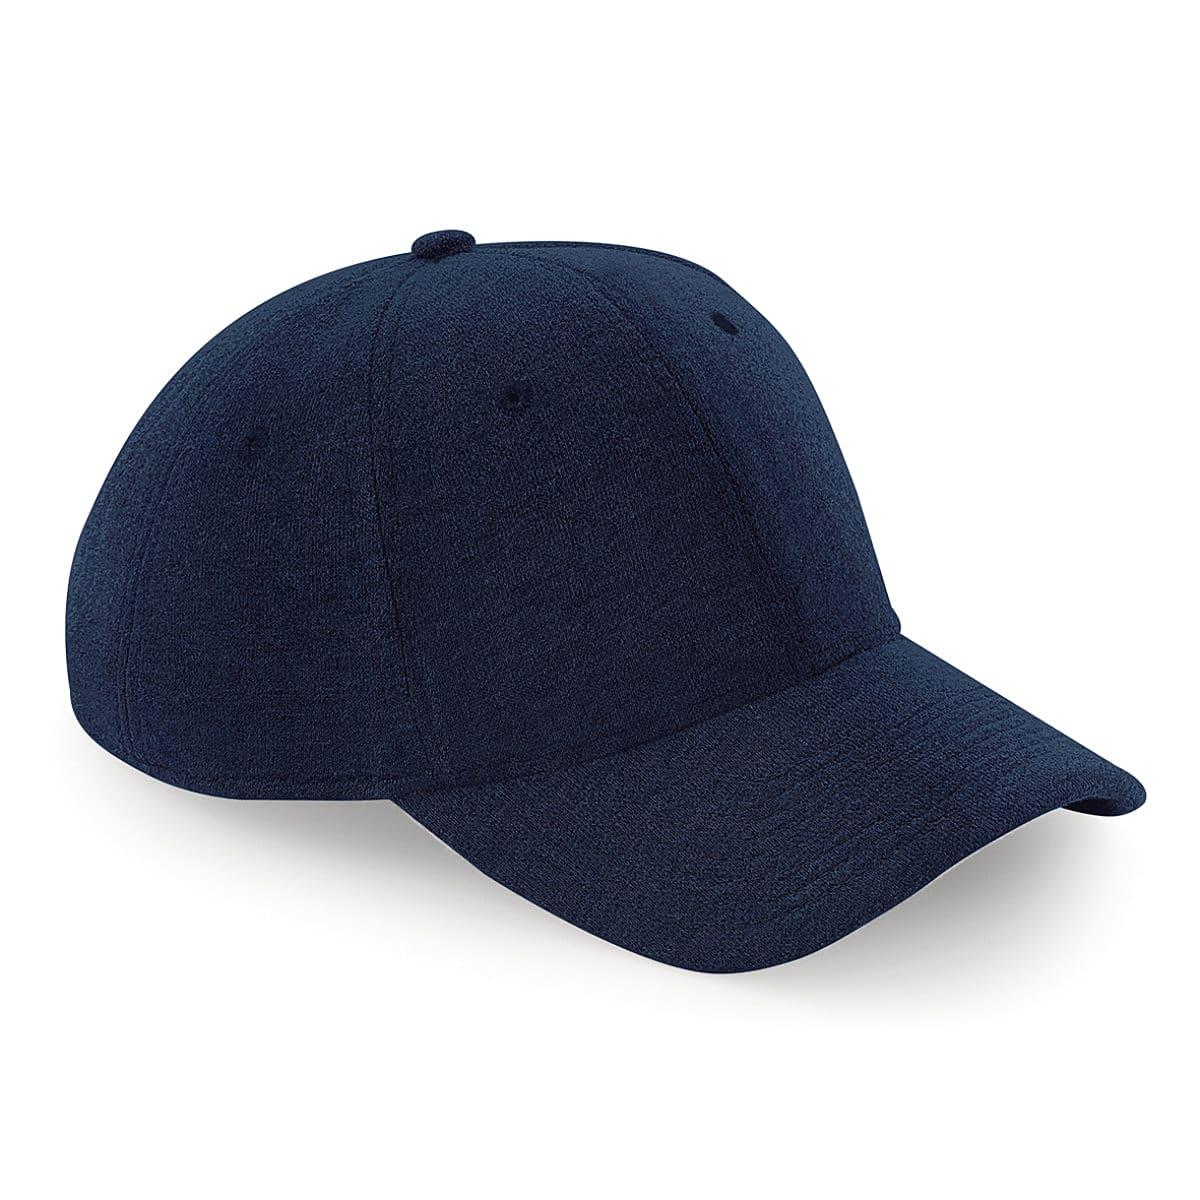 Beechfield Jersey Athleisure Cap in French Navy (Product Code: B677)